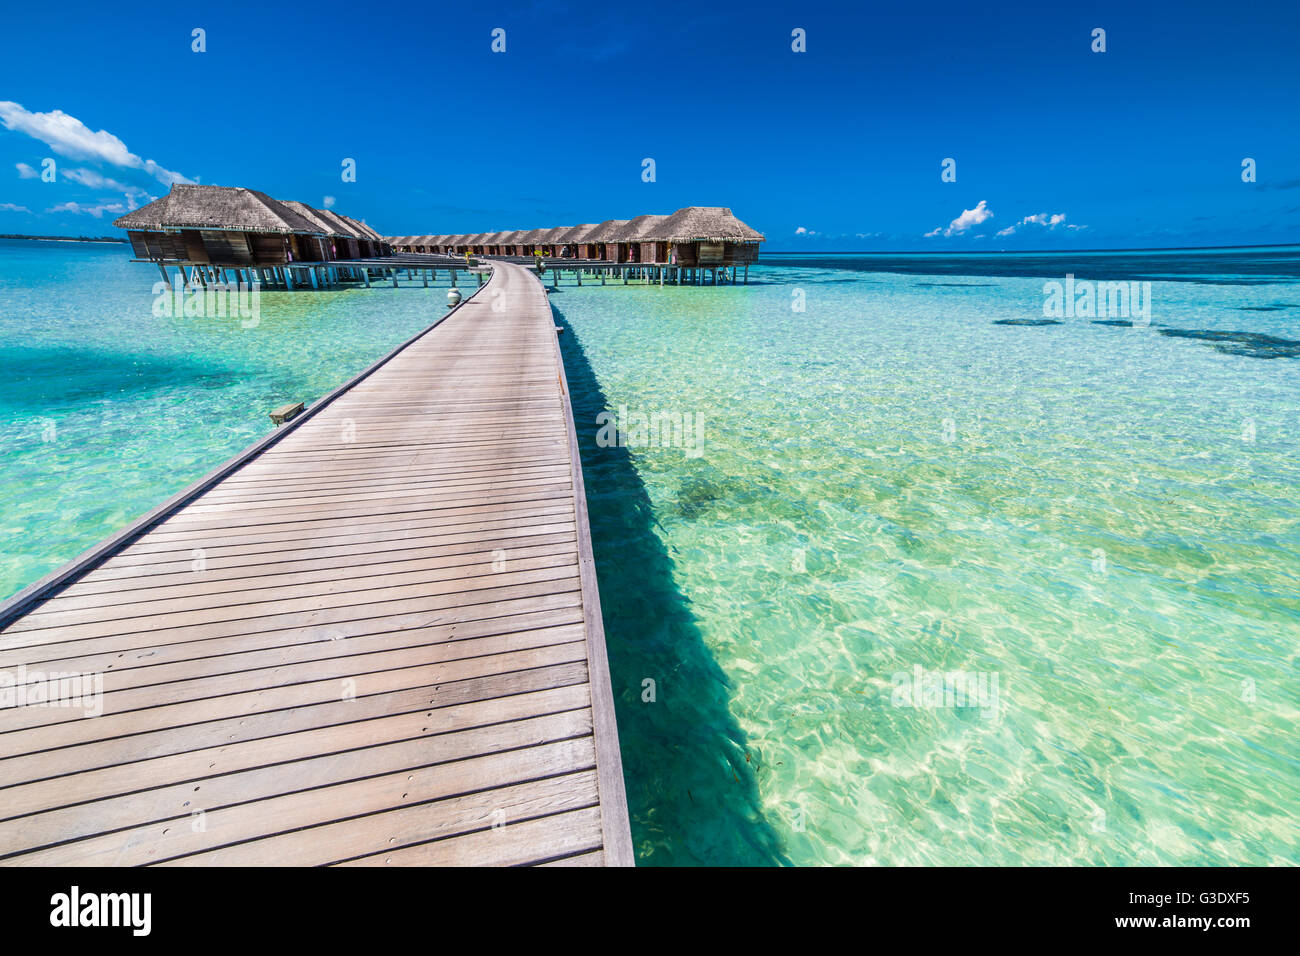 Amazing water villas on tropical and exotic, luxury island, Maldives - Stock Image